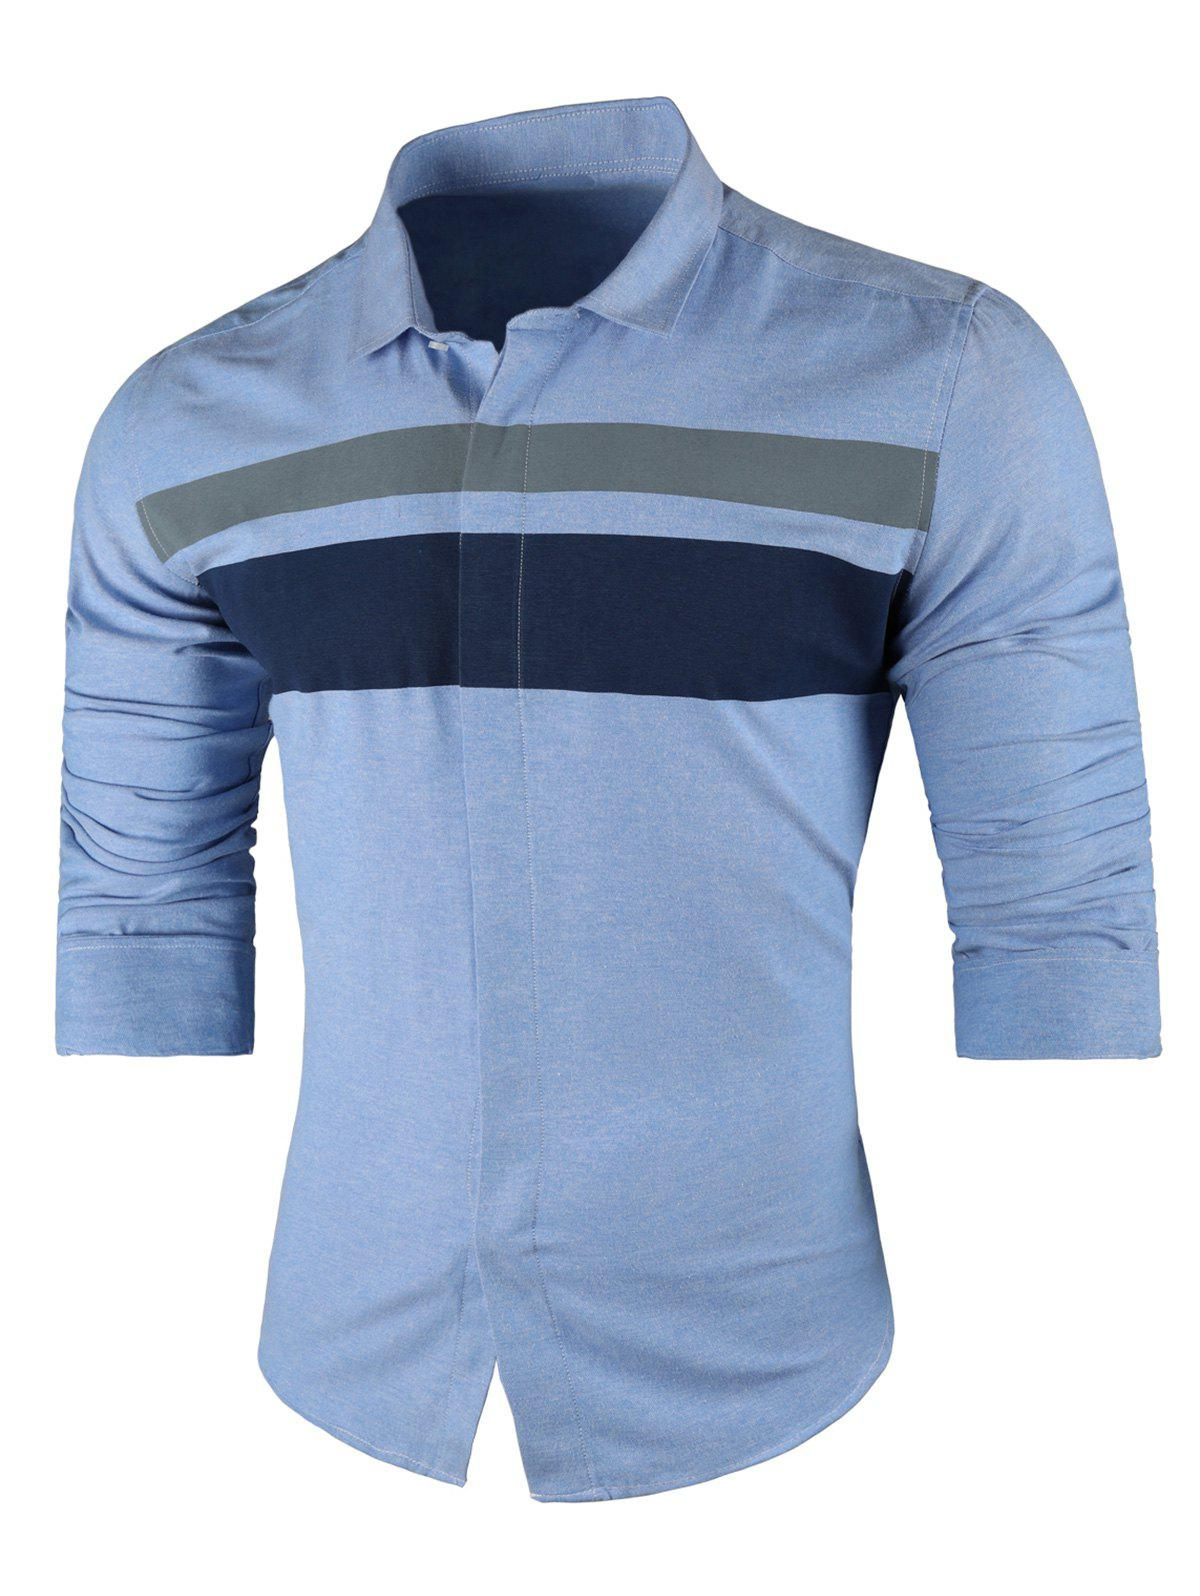 Wide Stripe Turndown Collar Long Sleeve Shirt - LIGHT BLUE 3XL